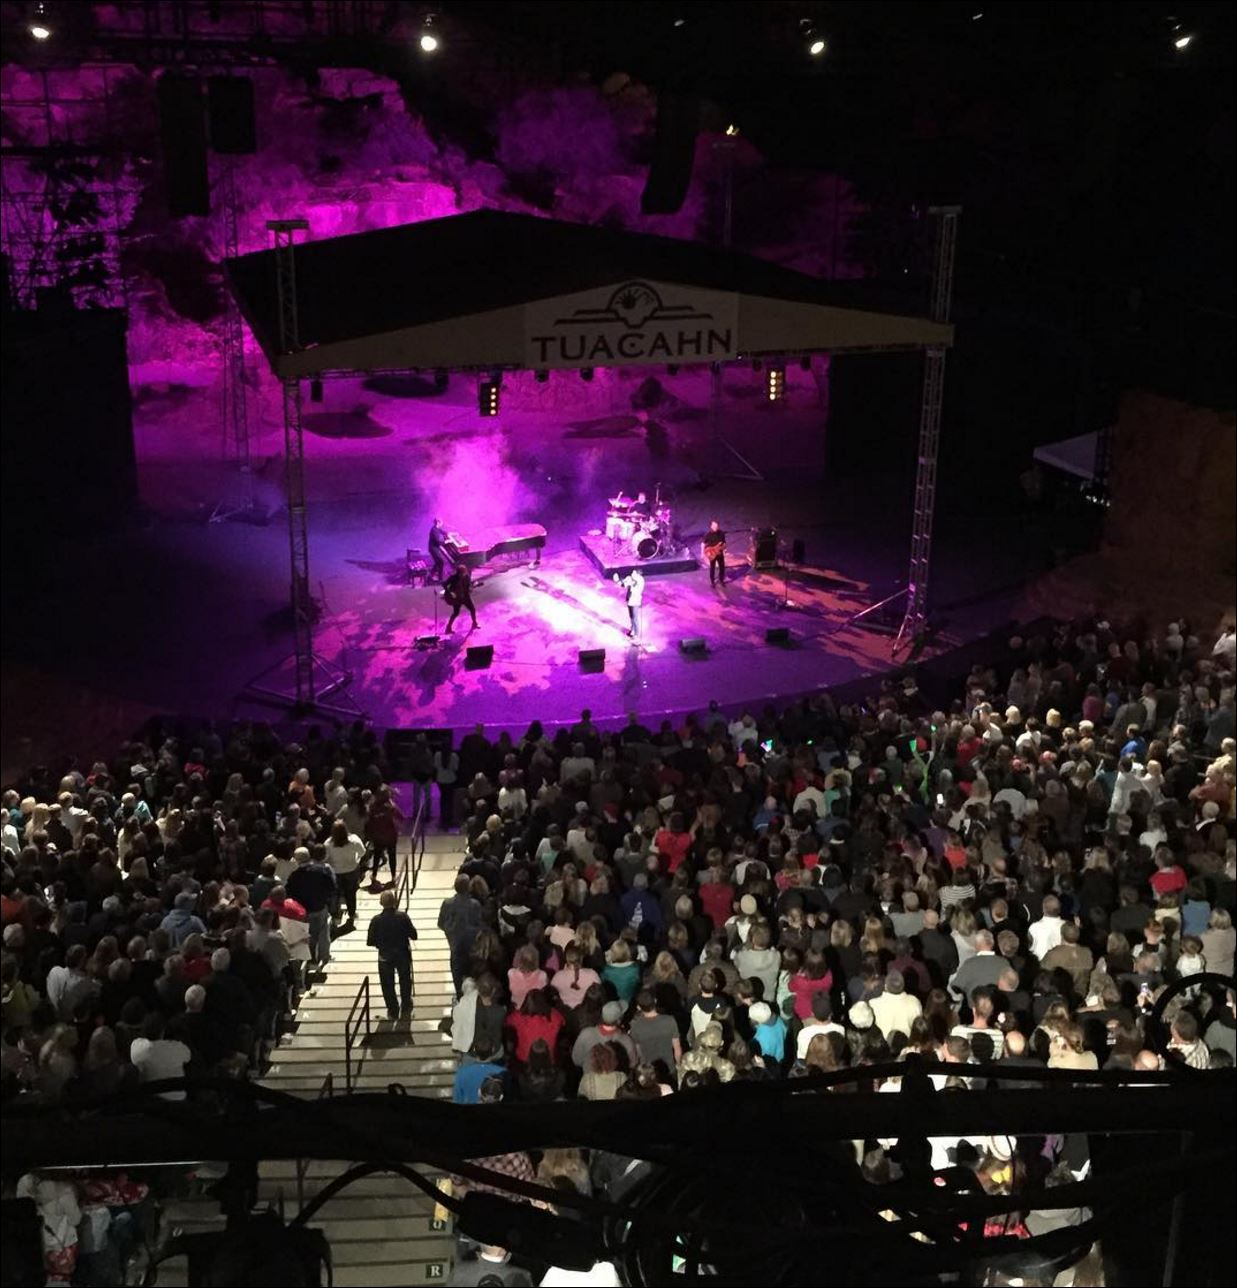 view-of-tuacahn-stage-concert-night